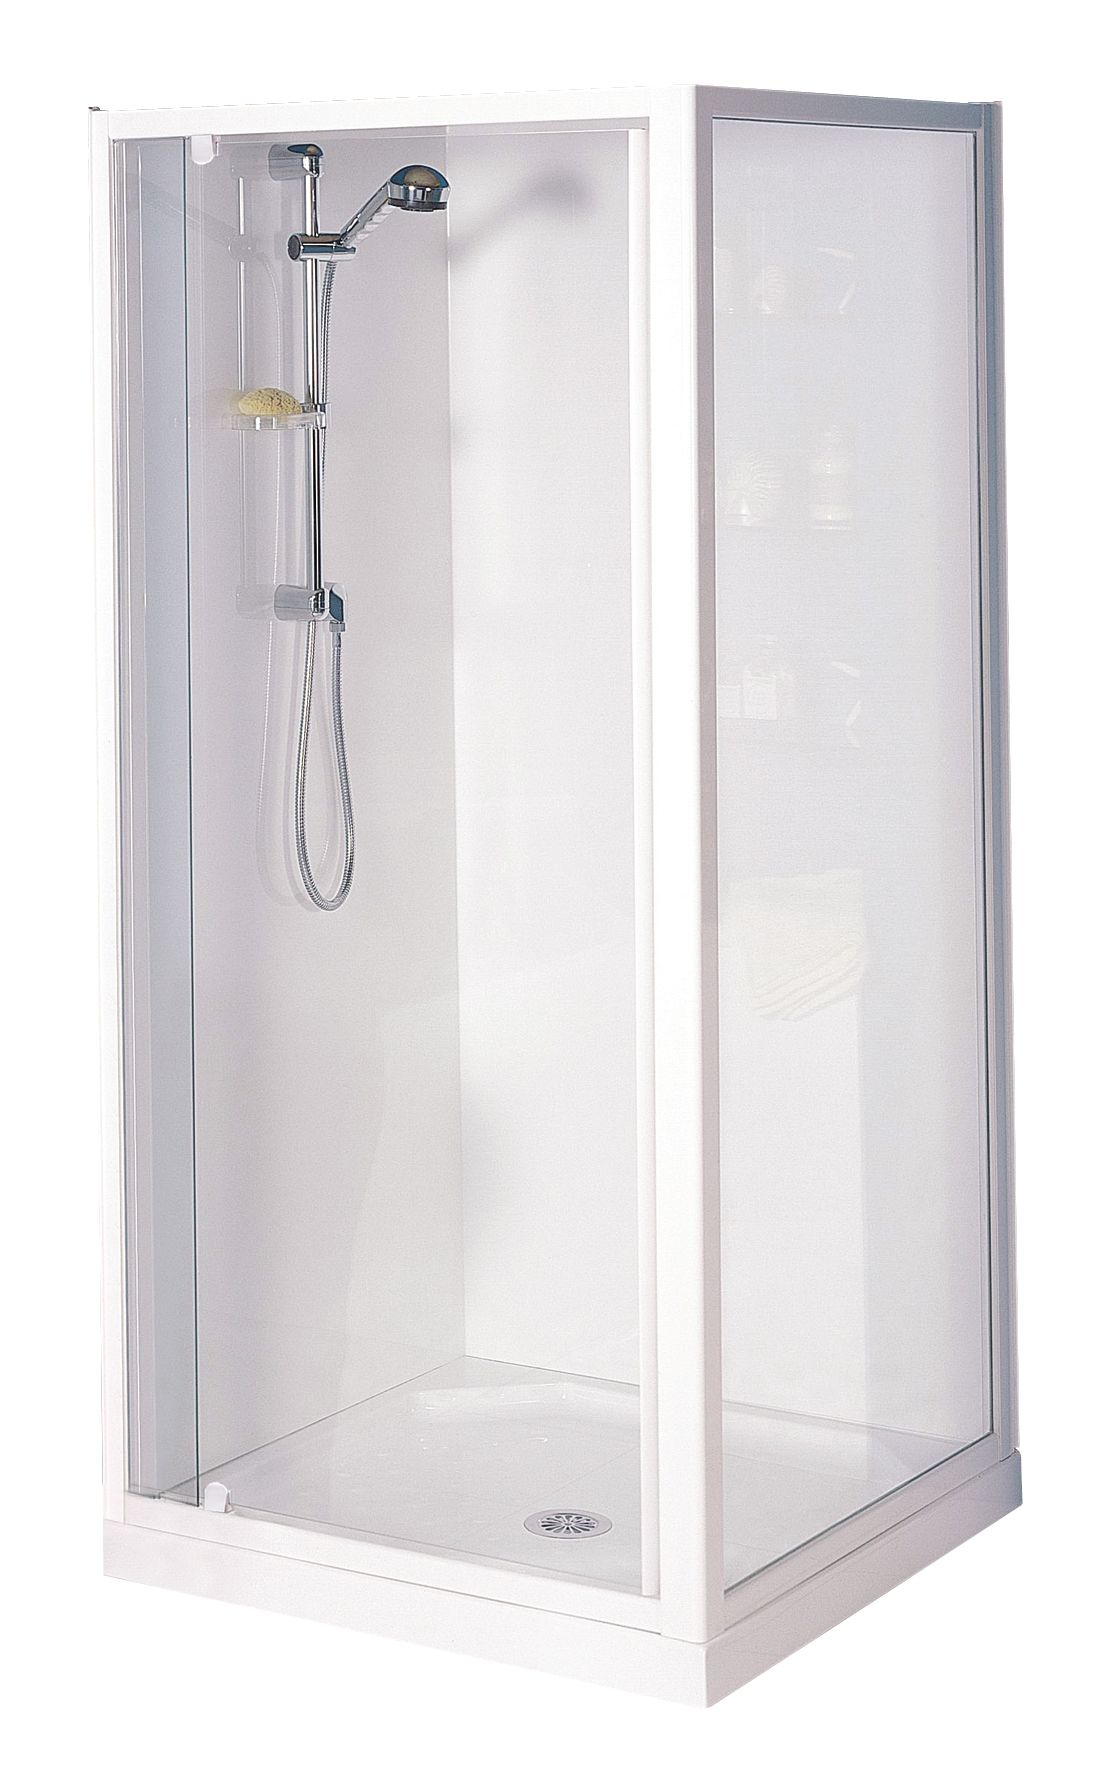 Clearlite Sierra Square Flat Wall Shower Enclosure Available At